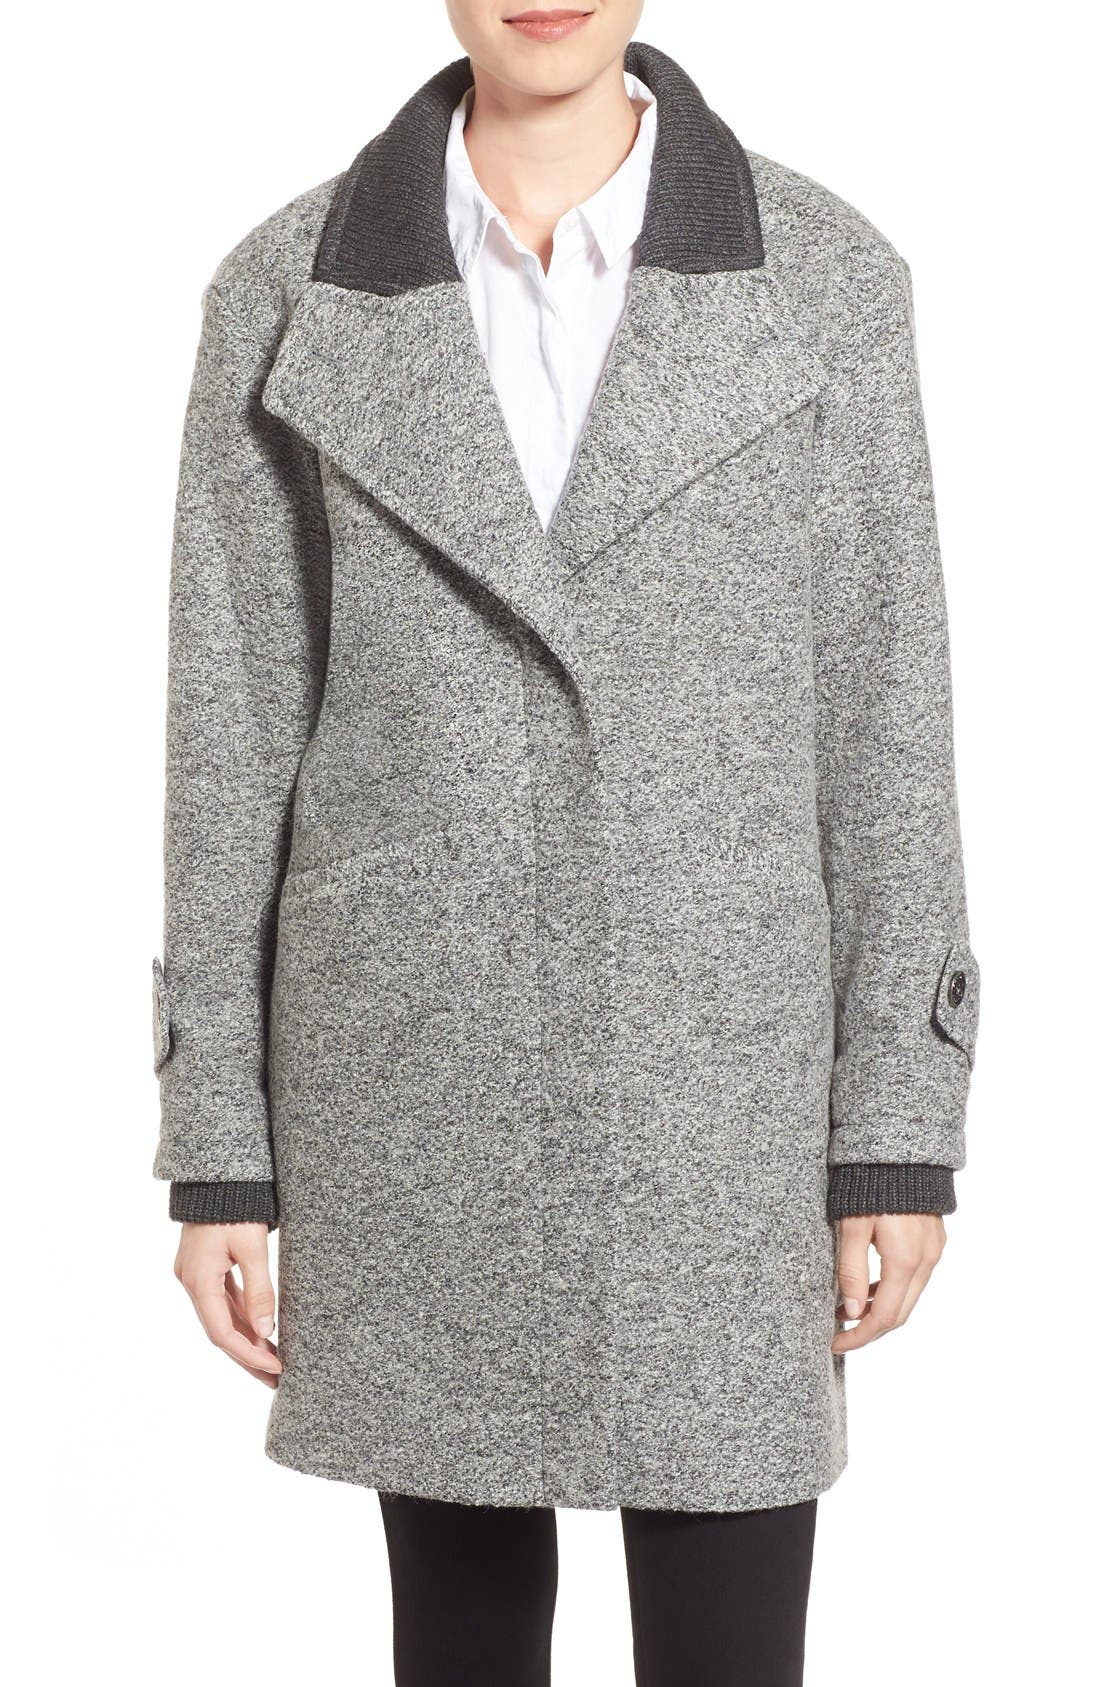 Alternate Image 1 Selected - French Connection Tweed Boyfriend Coat